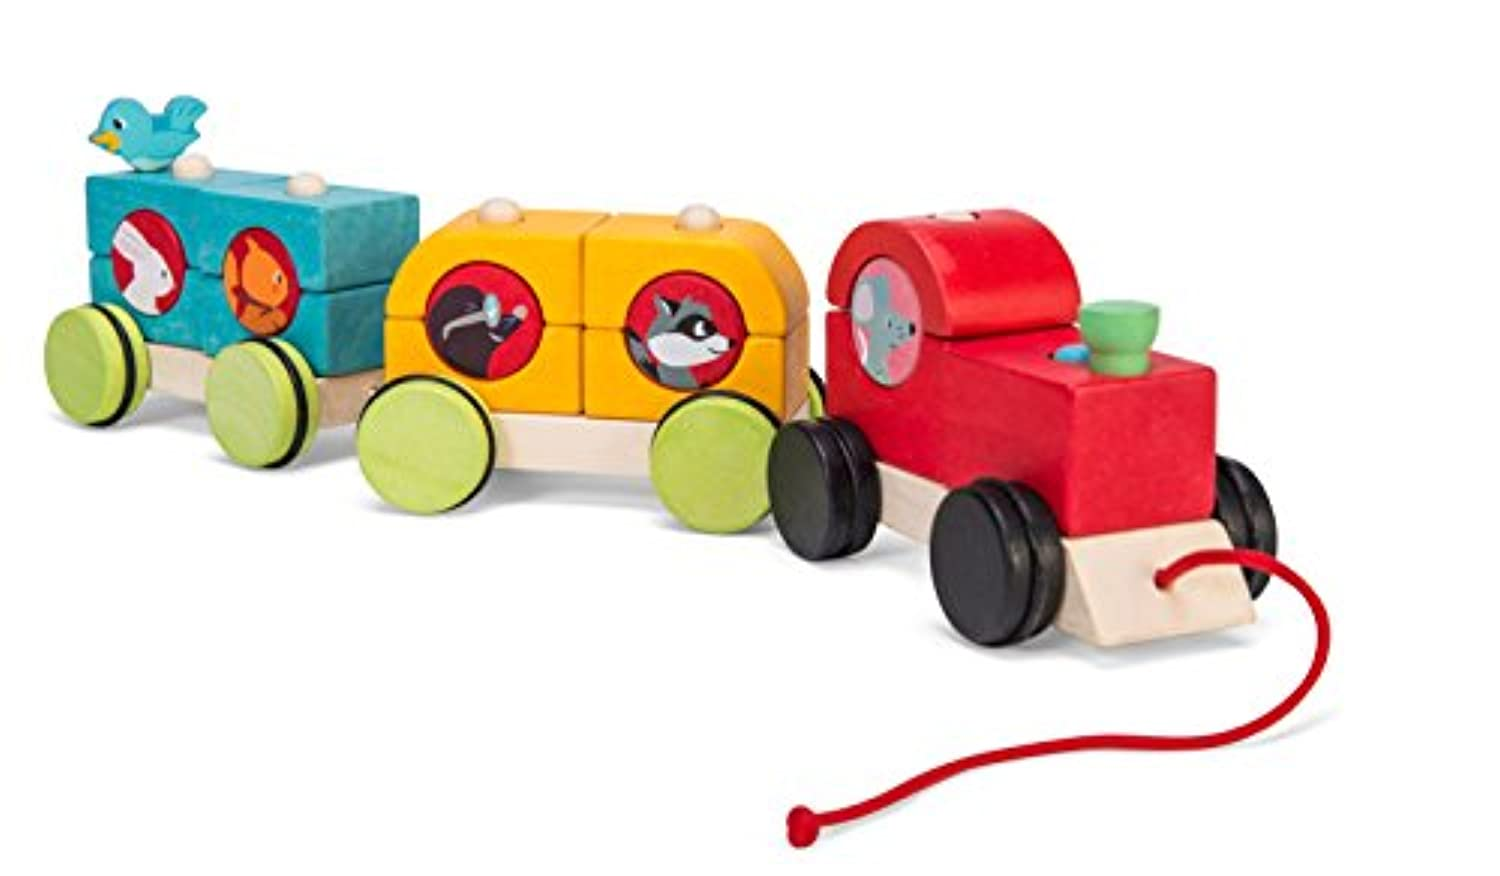 Le Toy Van Stacking TrainウッドランドExpress赤ちゃんおもちゃ